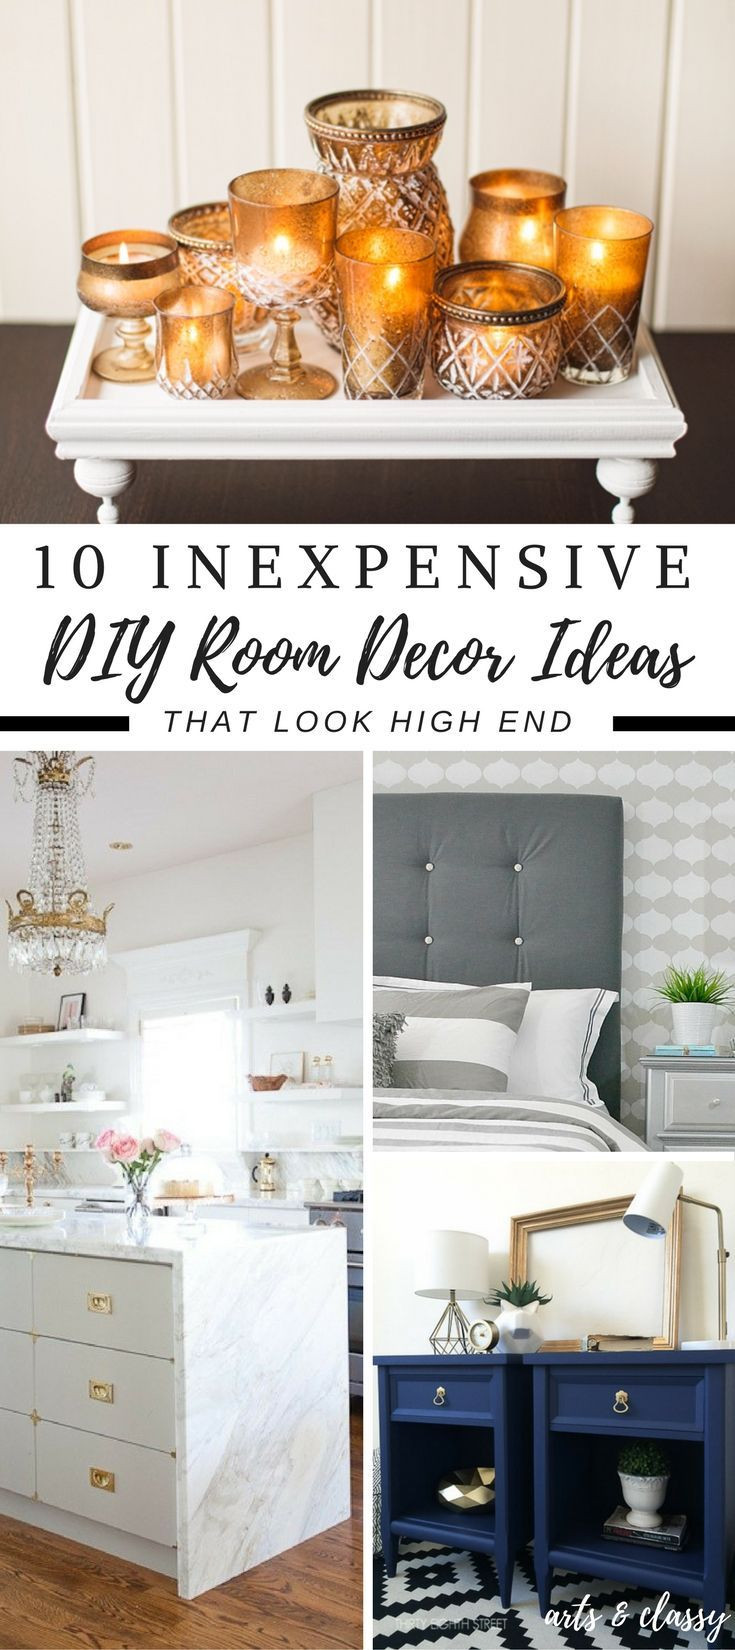 Best ideas about Cheap DIY Room Decor . Save or Pin 3392 best Decorating Ideas images on Pinterest Now.